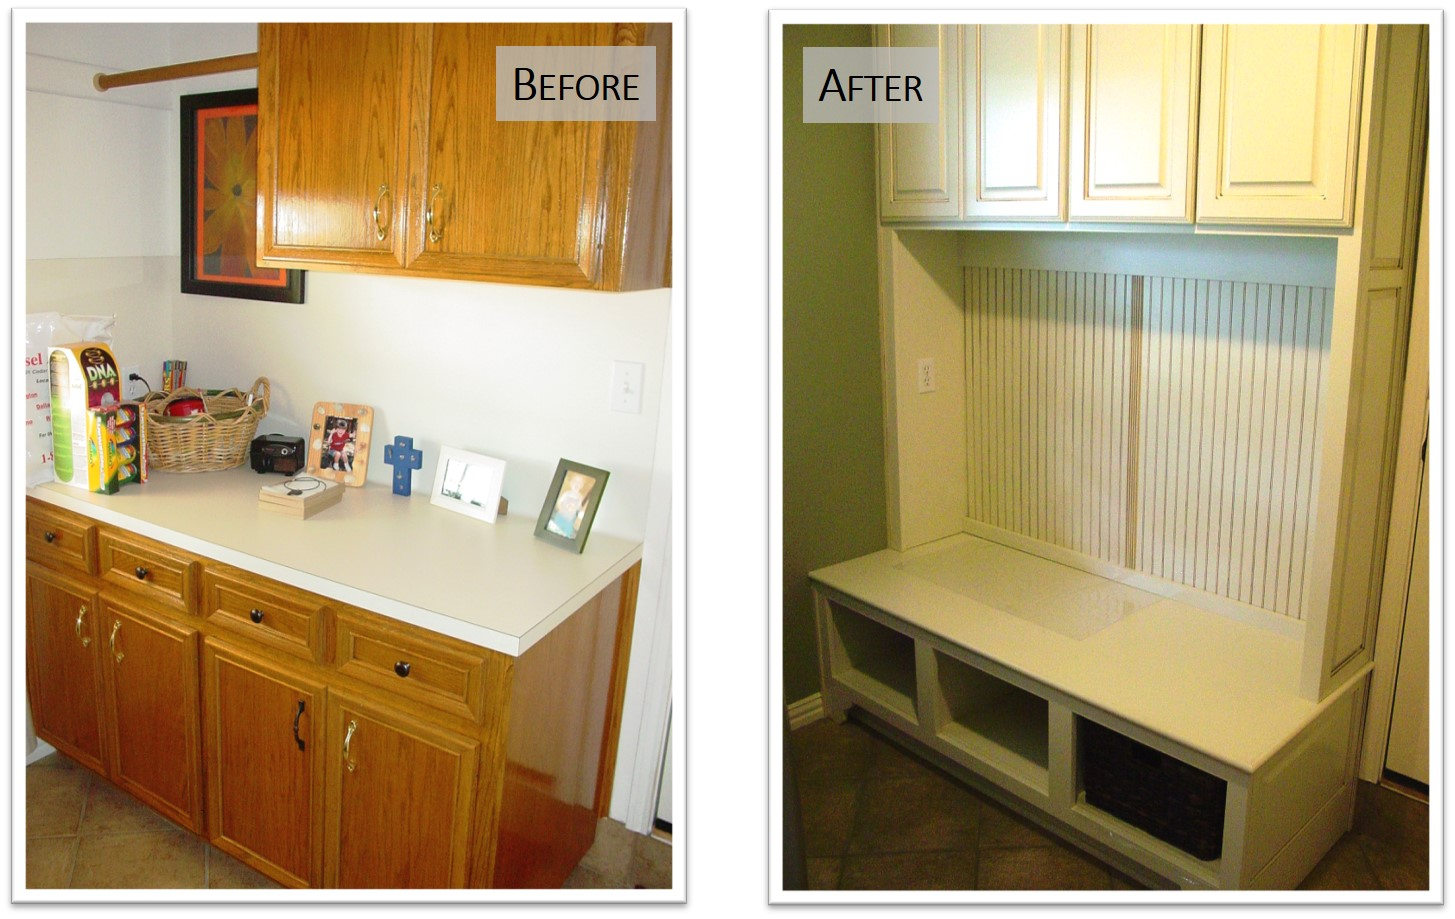 13205 CH, Laundry1, Before and After, Bear Creek Homes.jpg